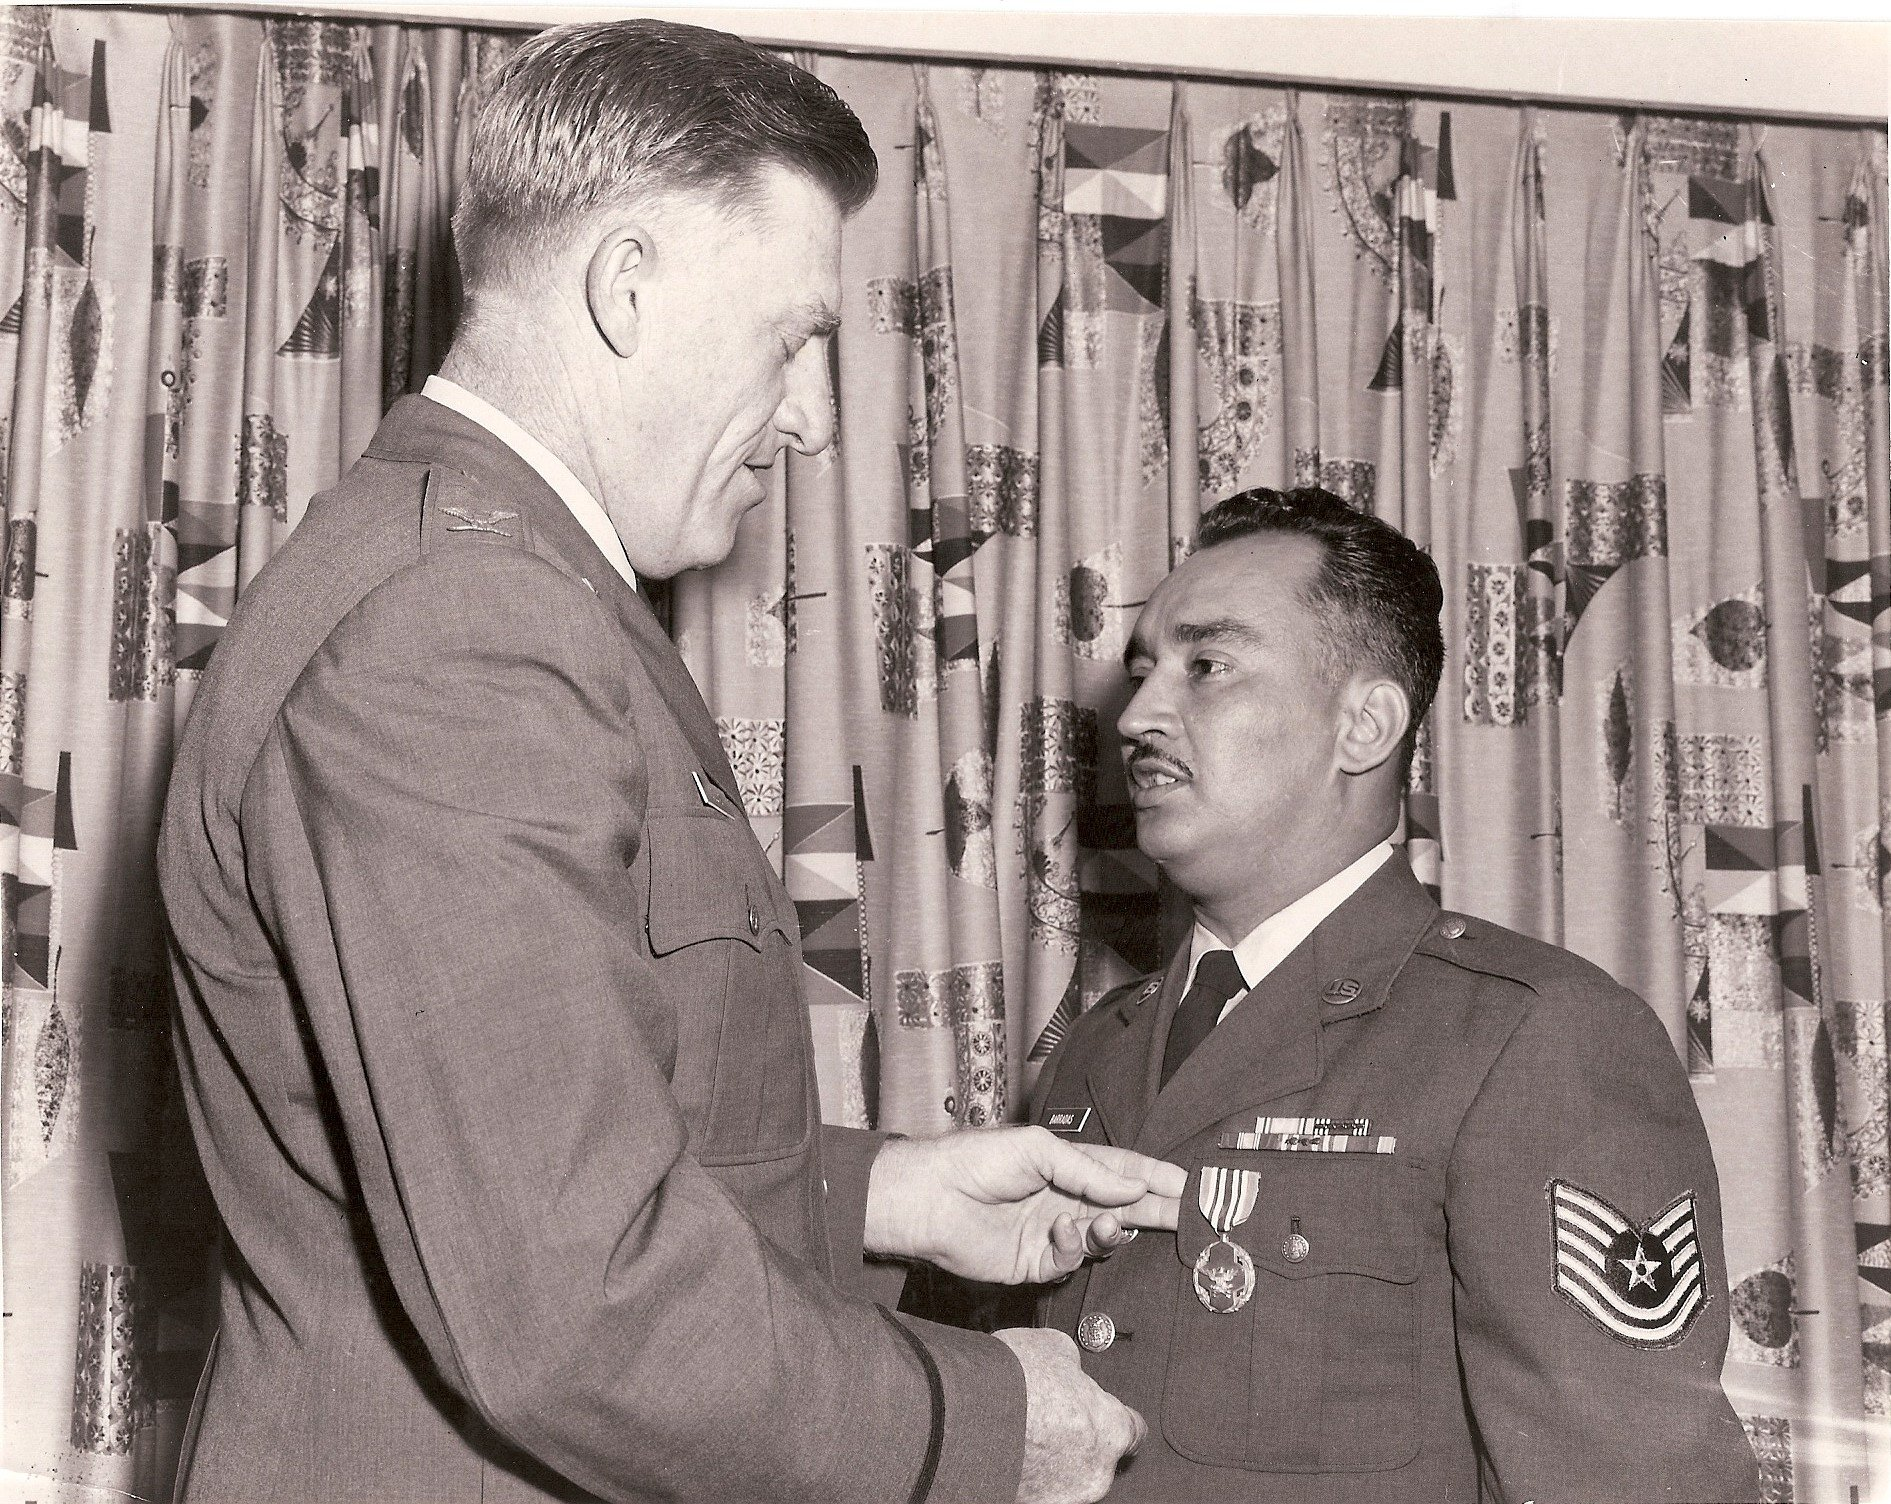 MSgt Carlos A Barradas (Tito) - Of all the medals, awards, formal presentations and qualification badges you received, or other memorabilia, which one is the most meaningful to you and why?